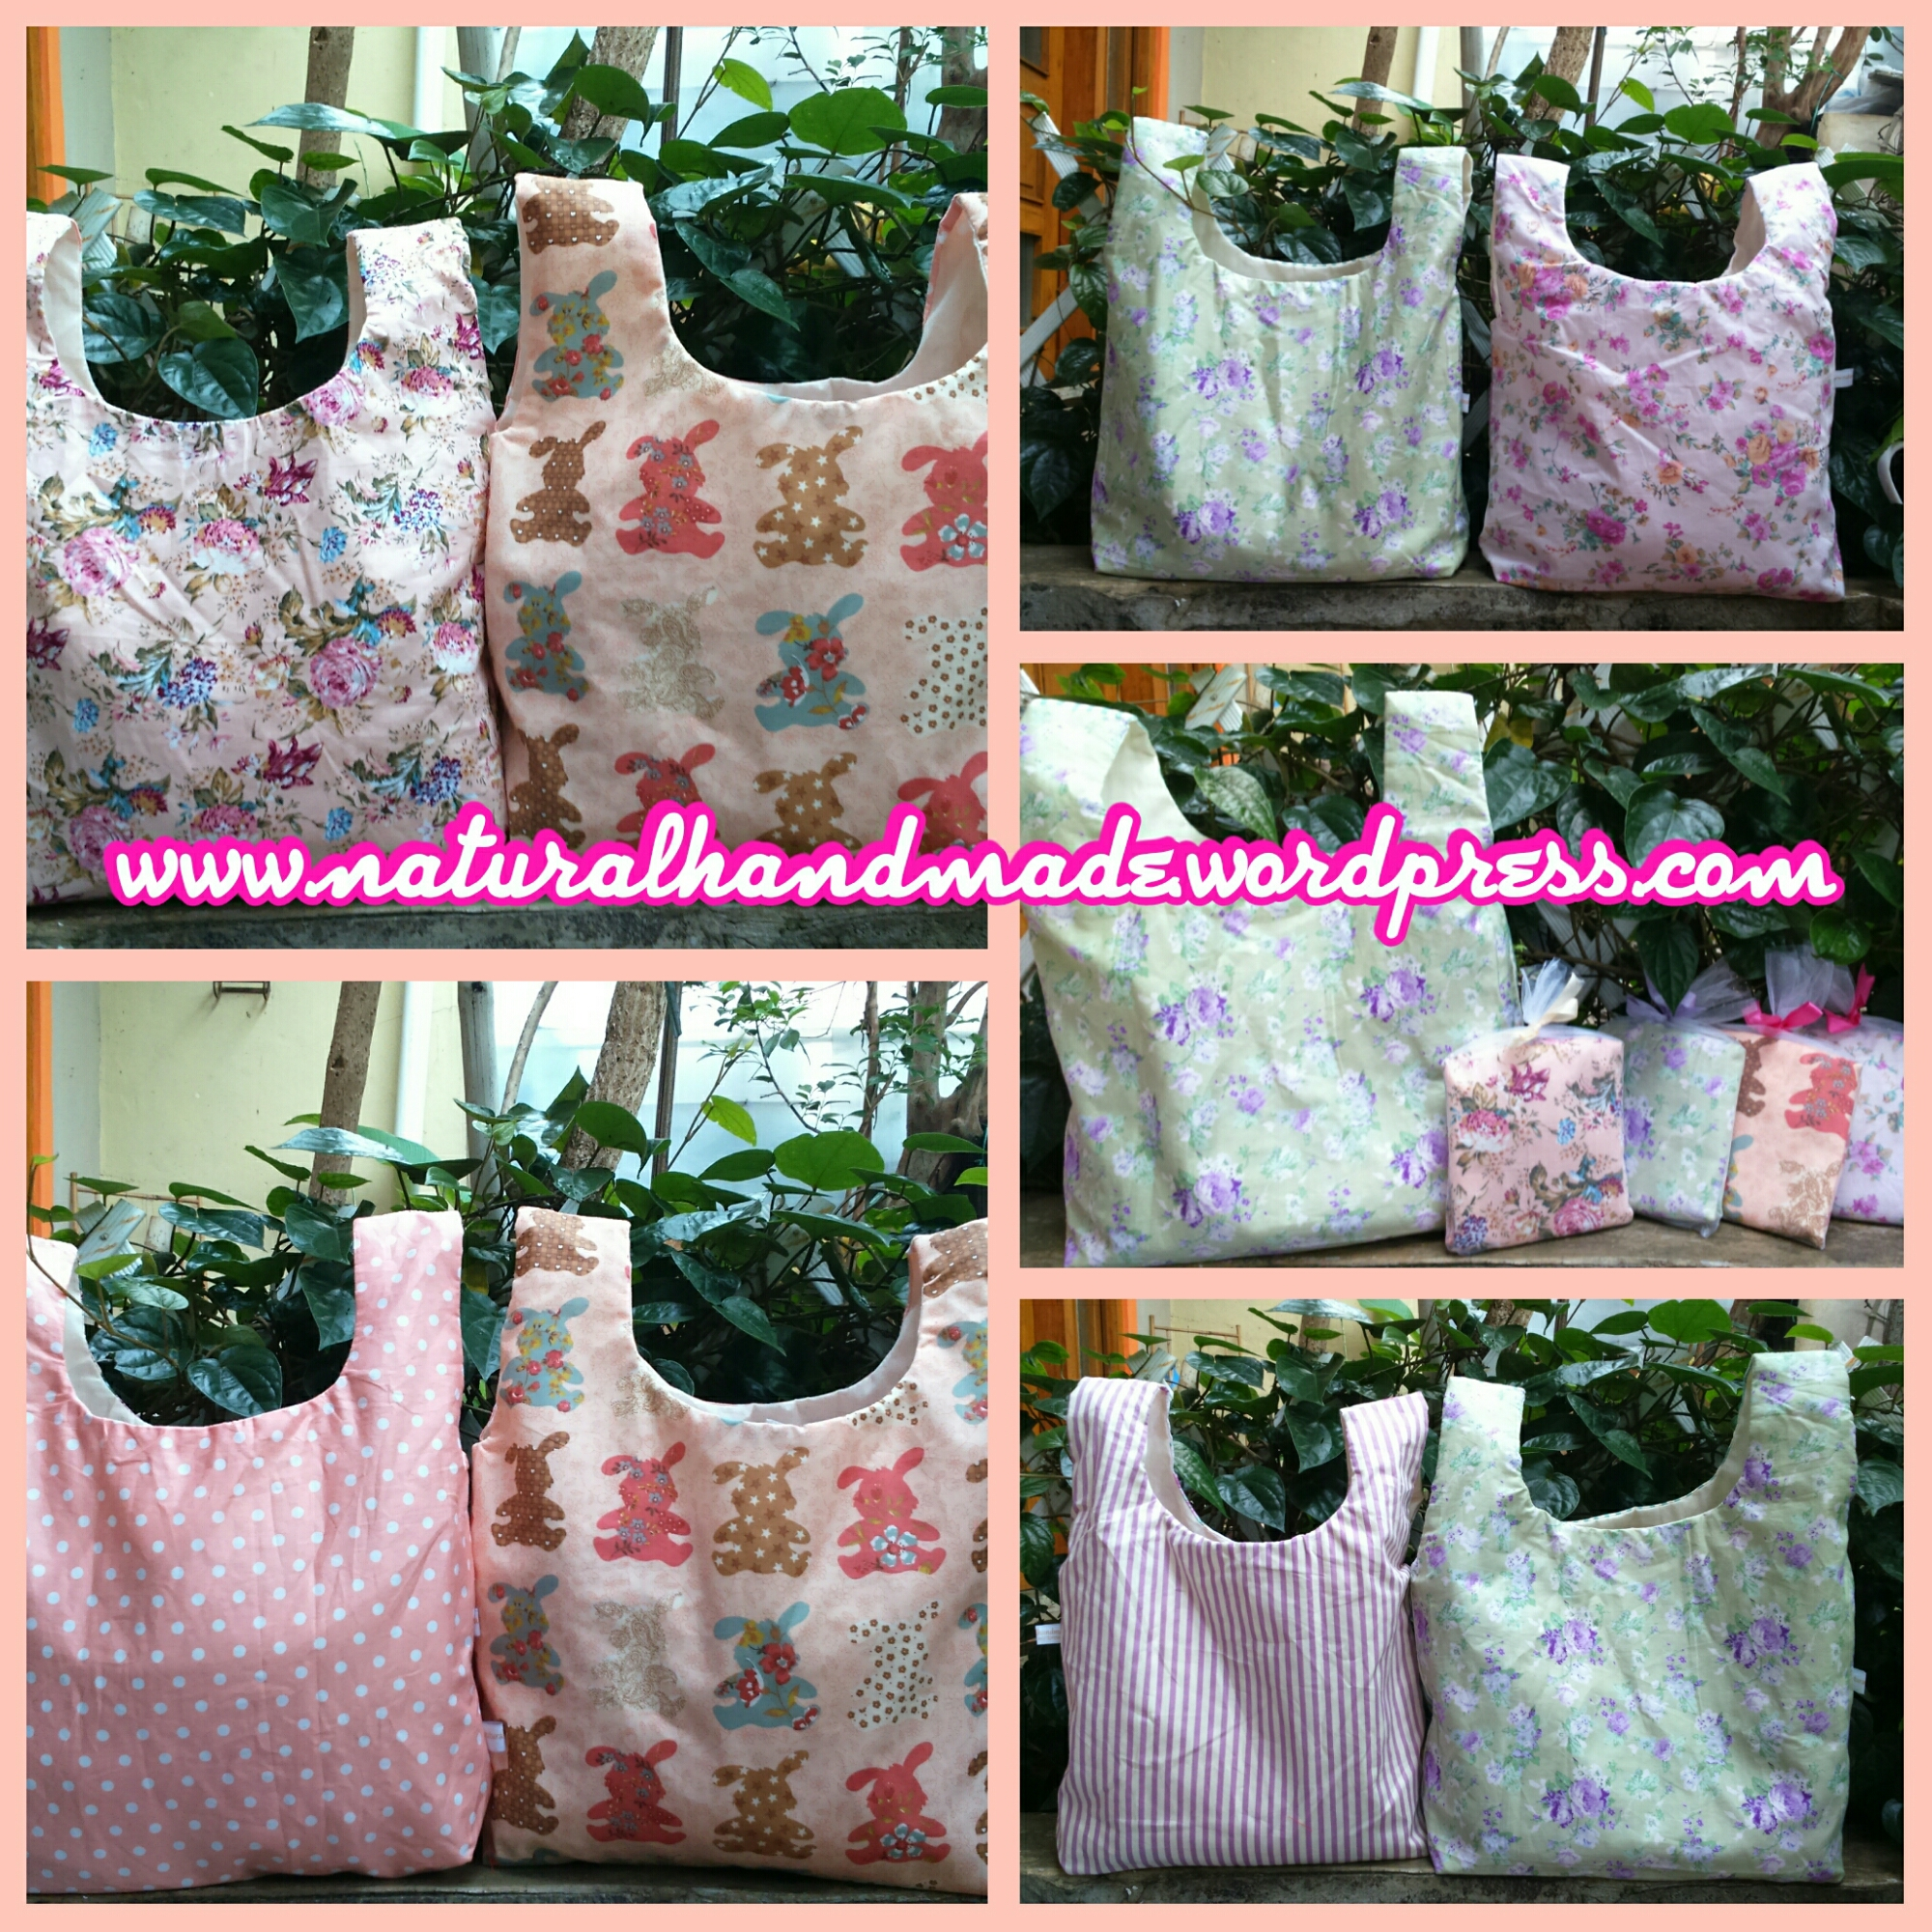 Goody Bag - SHopping Bag